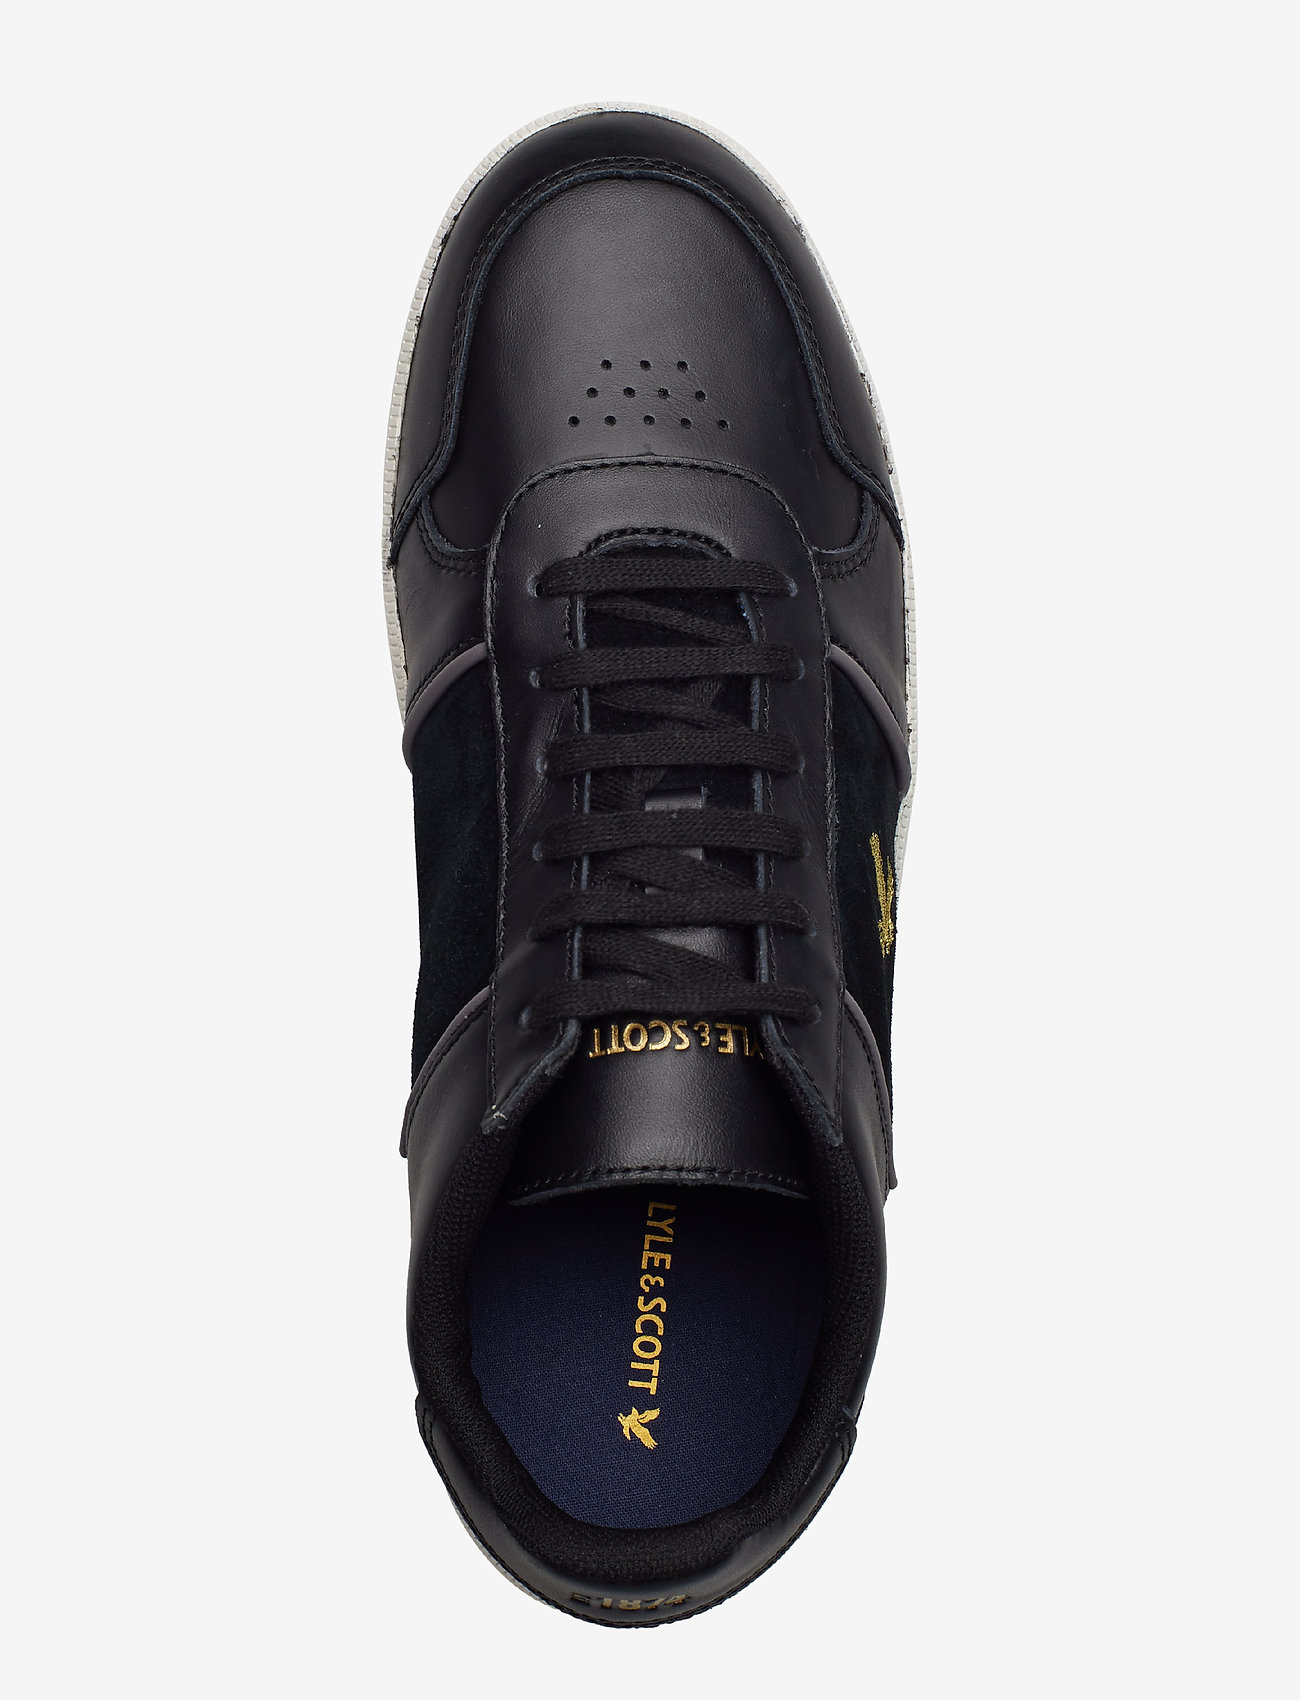 Mcavennie Ii (True Black) - Lyle & Scott